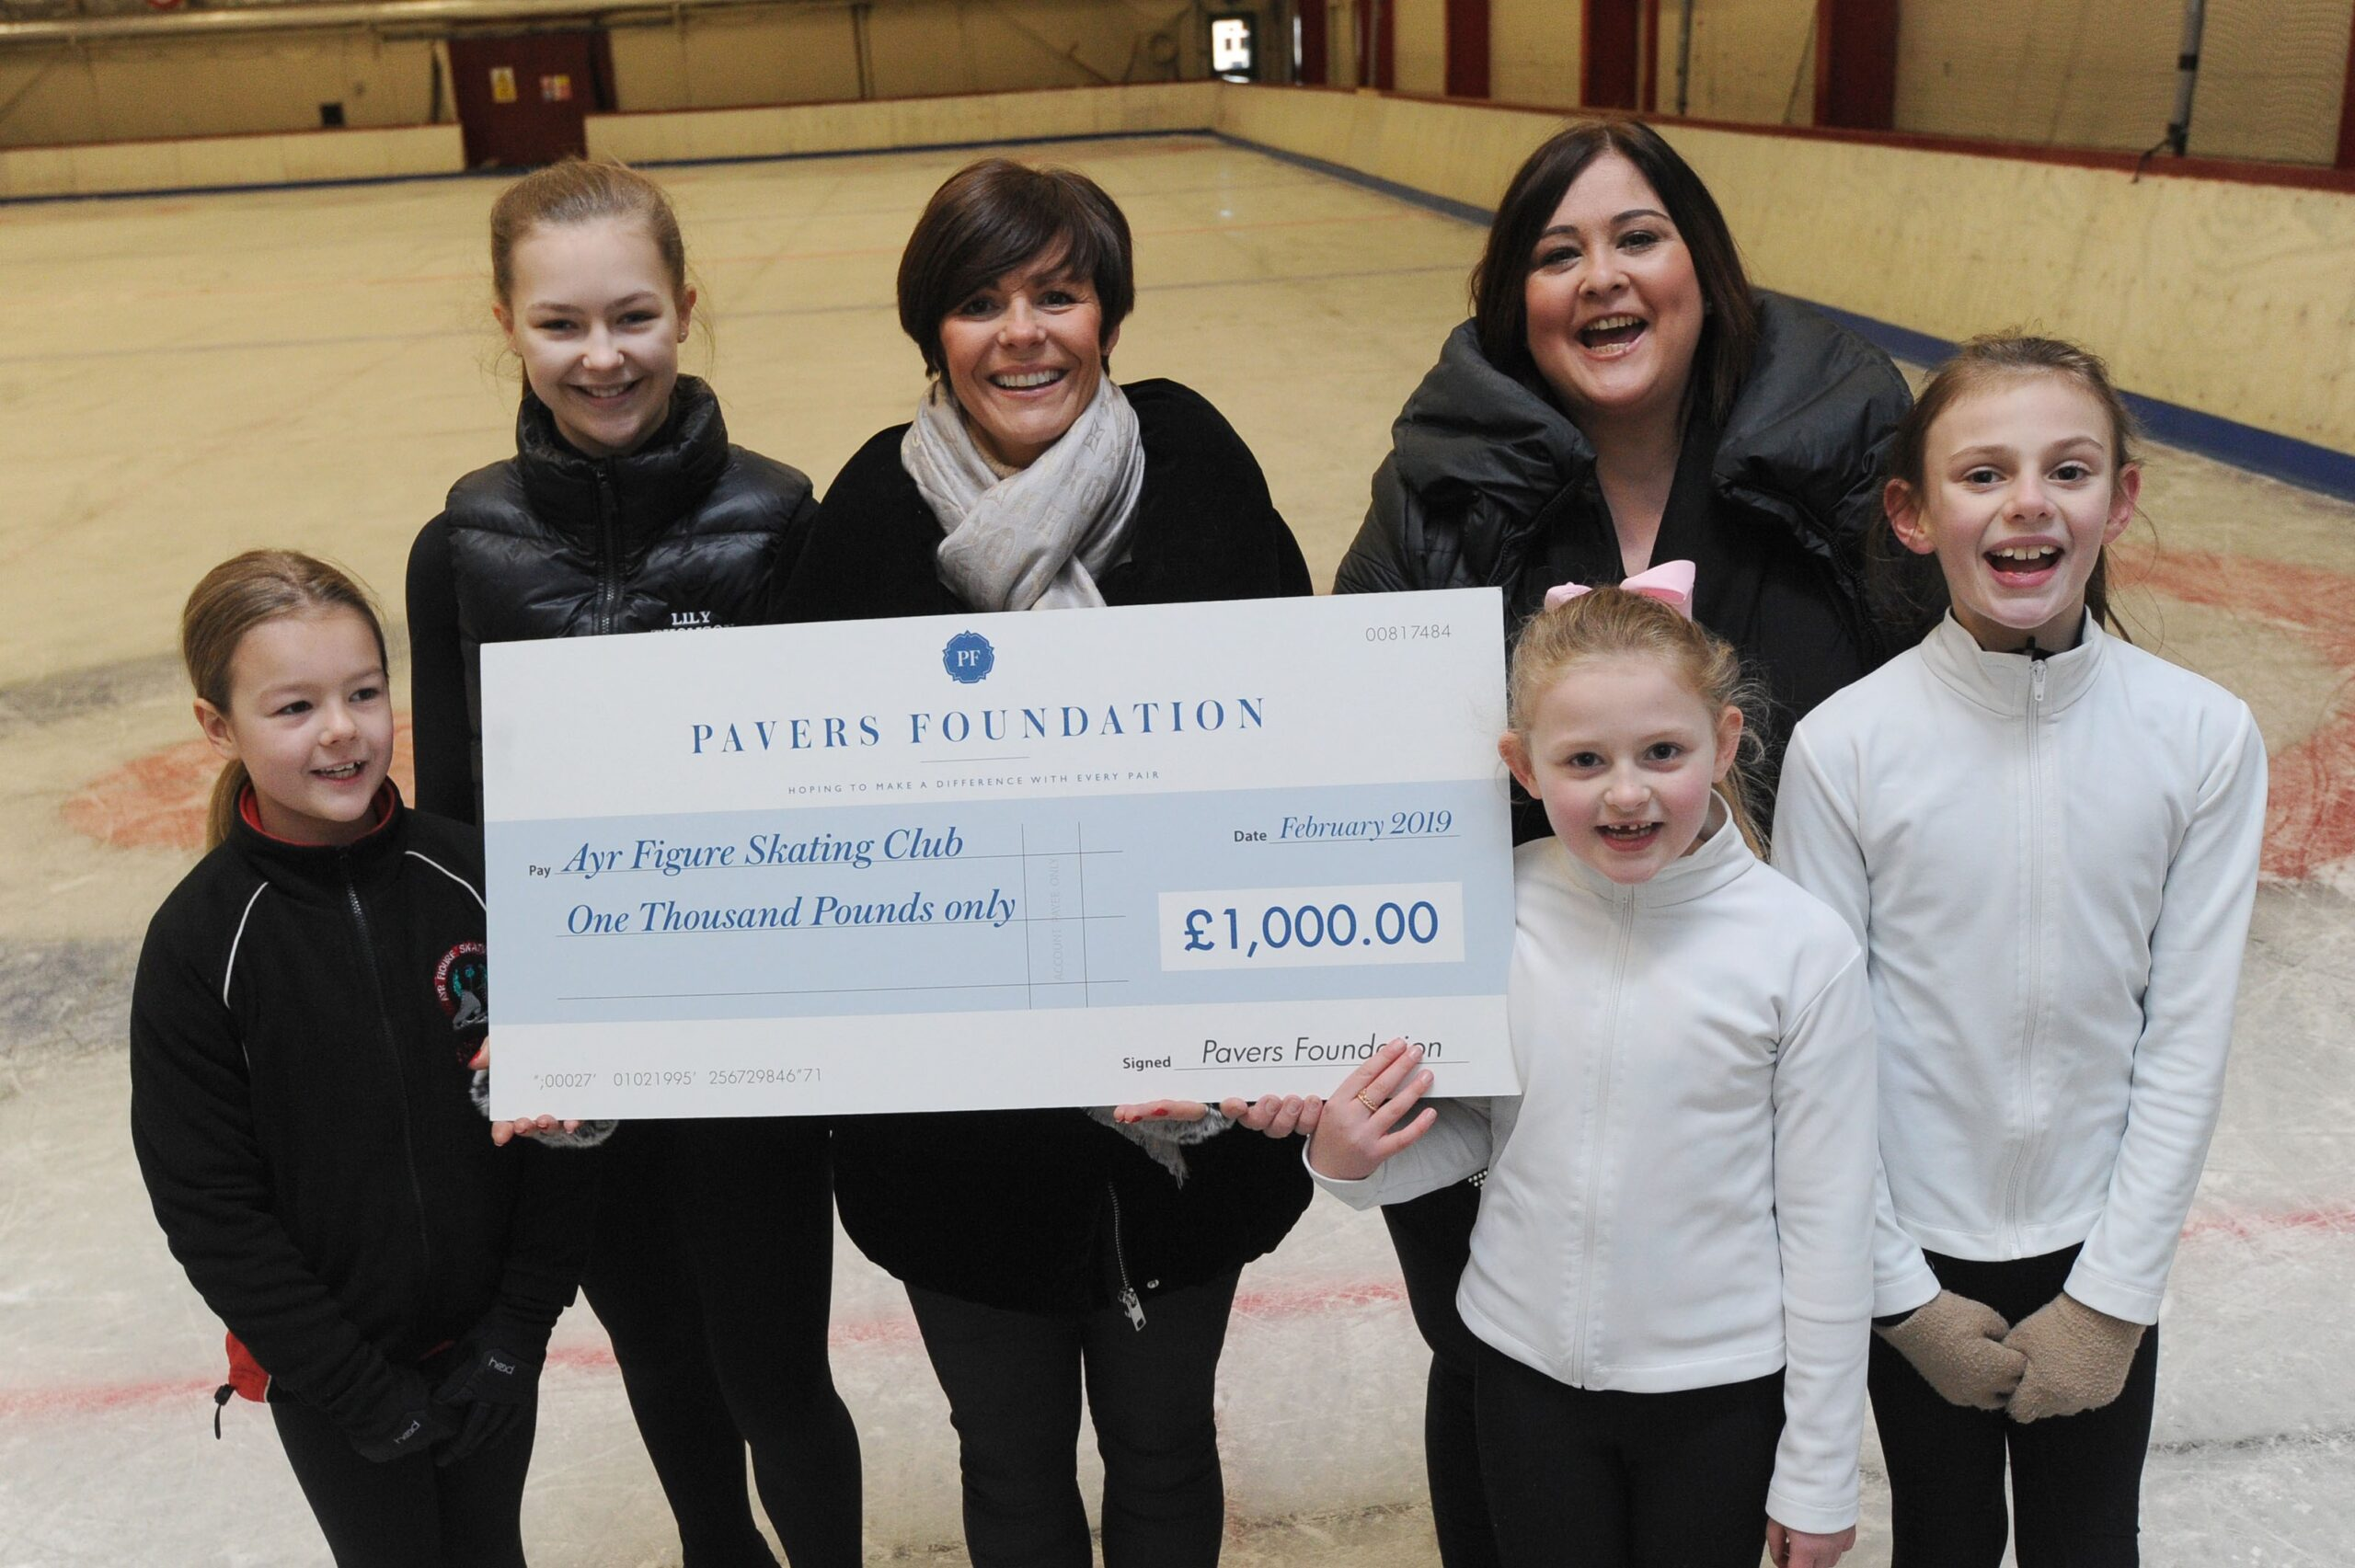 Ayr Figure Skating Club puts best skate forward with The Pavers Foundation